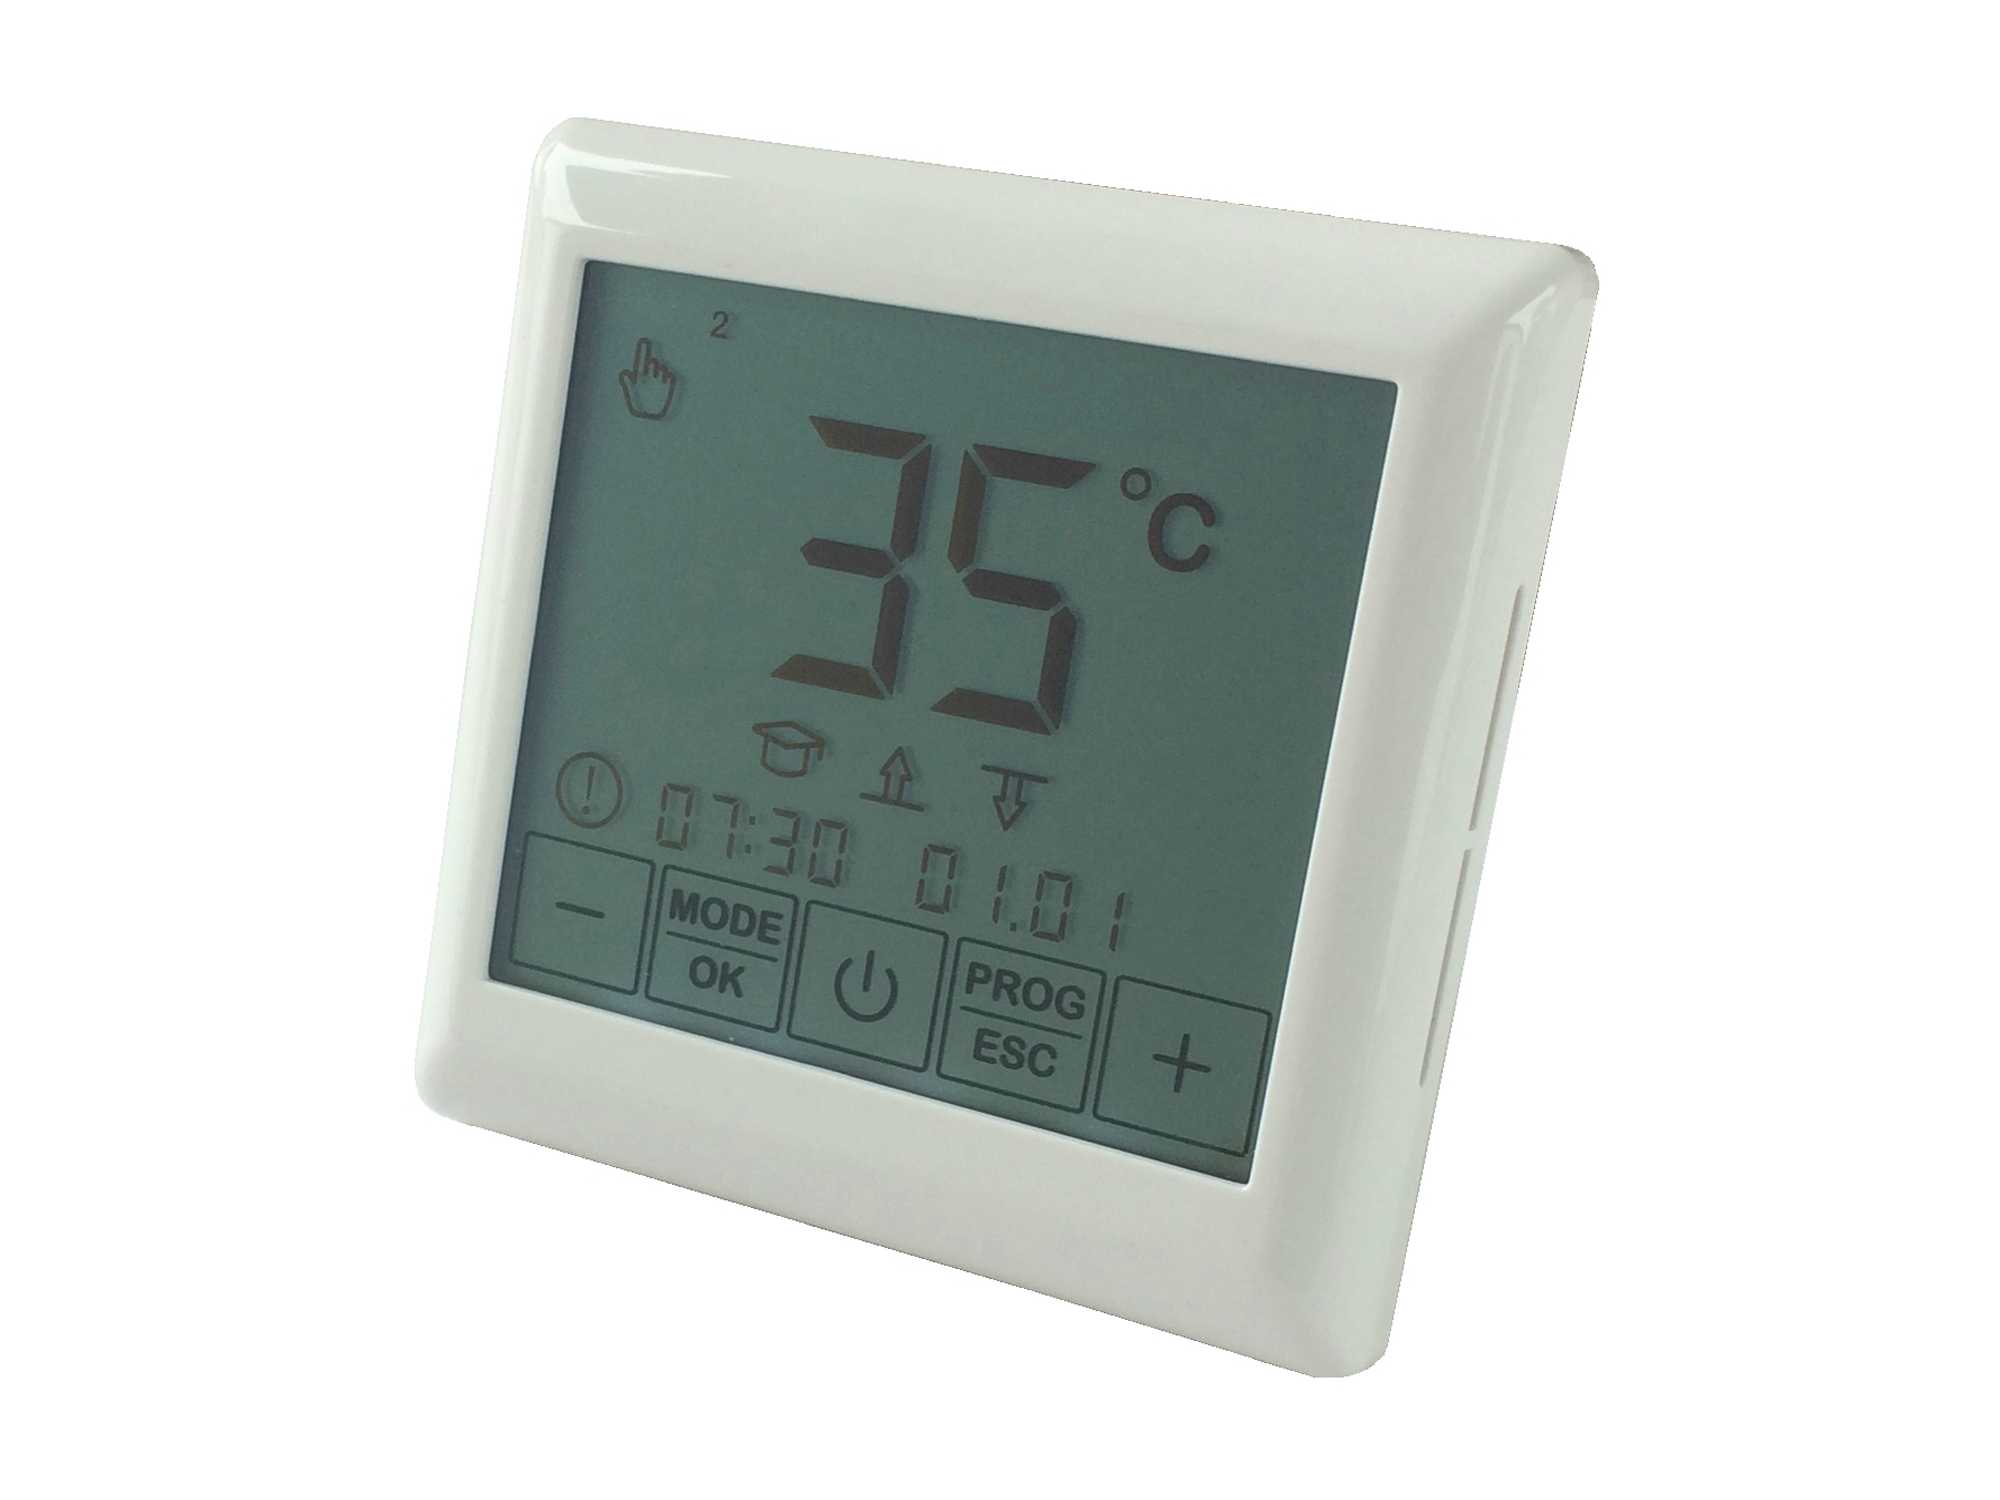 thermostat digitalregler touch f r elektro fu bodenheizung mit digitaler programmierbarer. Black Bedroom Furniture Sets. Home Design Ideas